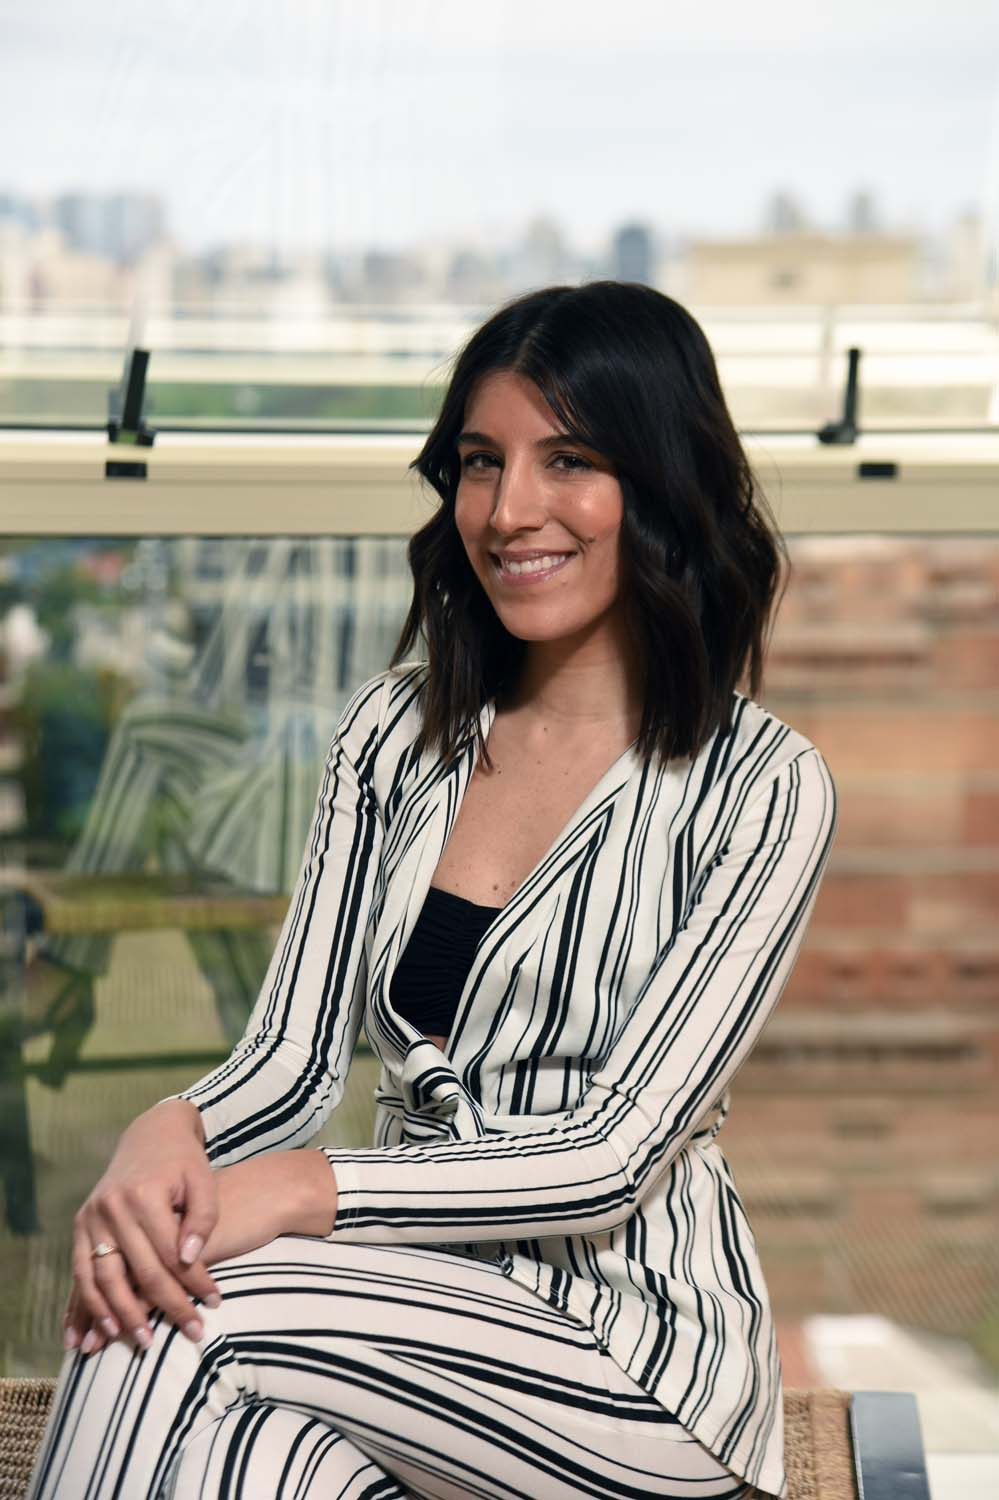 Isabella Mise is the Director of Member Relations for Ashley Madison. She is on a mission to reveal the true nature of infidelity and she does so by speaking directly to the men and women who use the married dating website every day. Through their insights she is able to shine a light on the struggles that accompany the very foundation of modern marriage - monogamy.